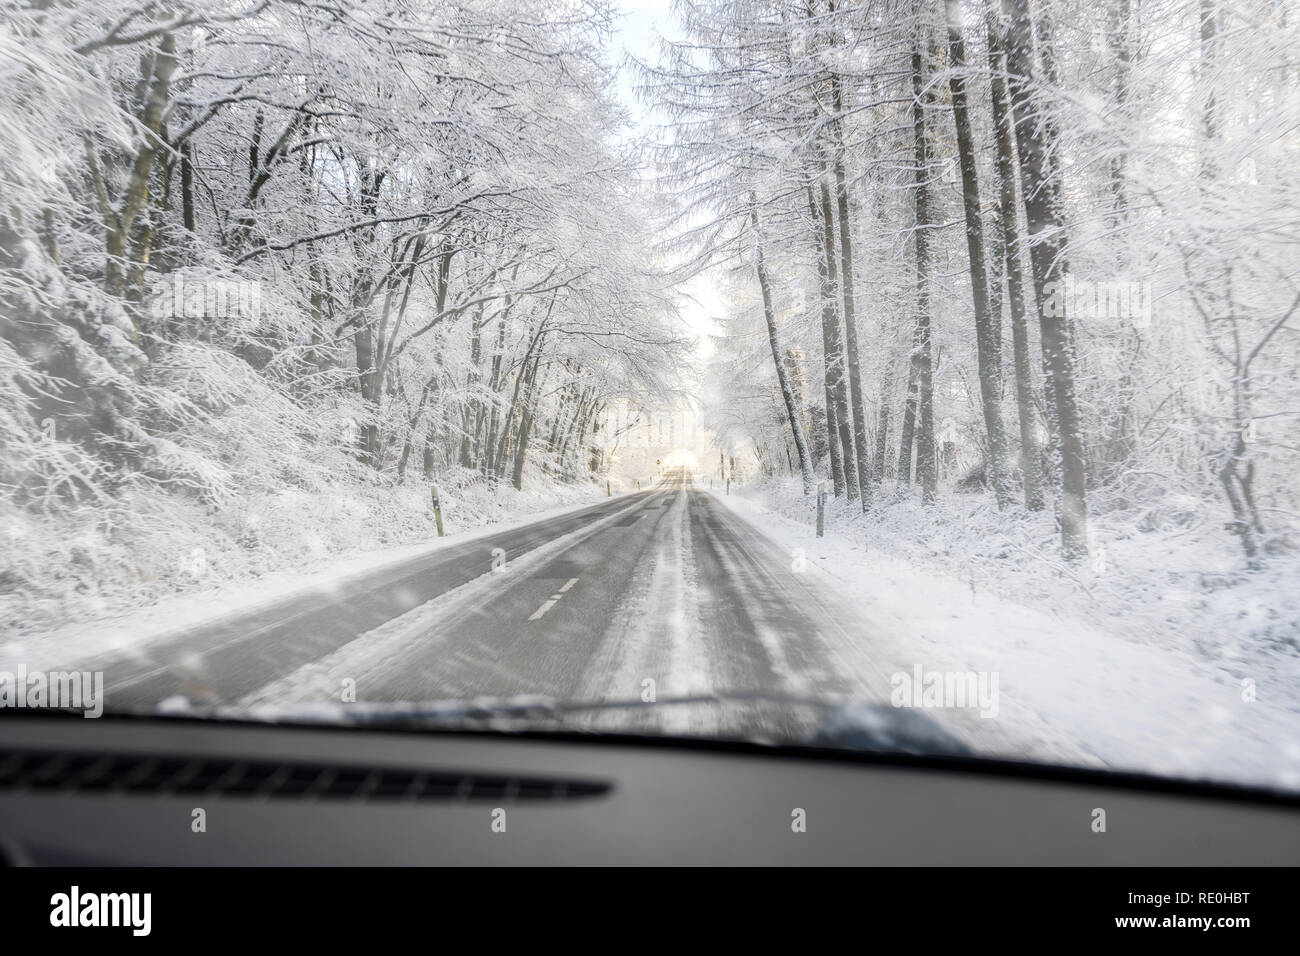 view through the windscreen when driving dangerously on a slippery forest road in the snow, copy space, selected focus - Stock Image